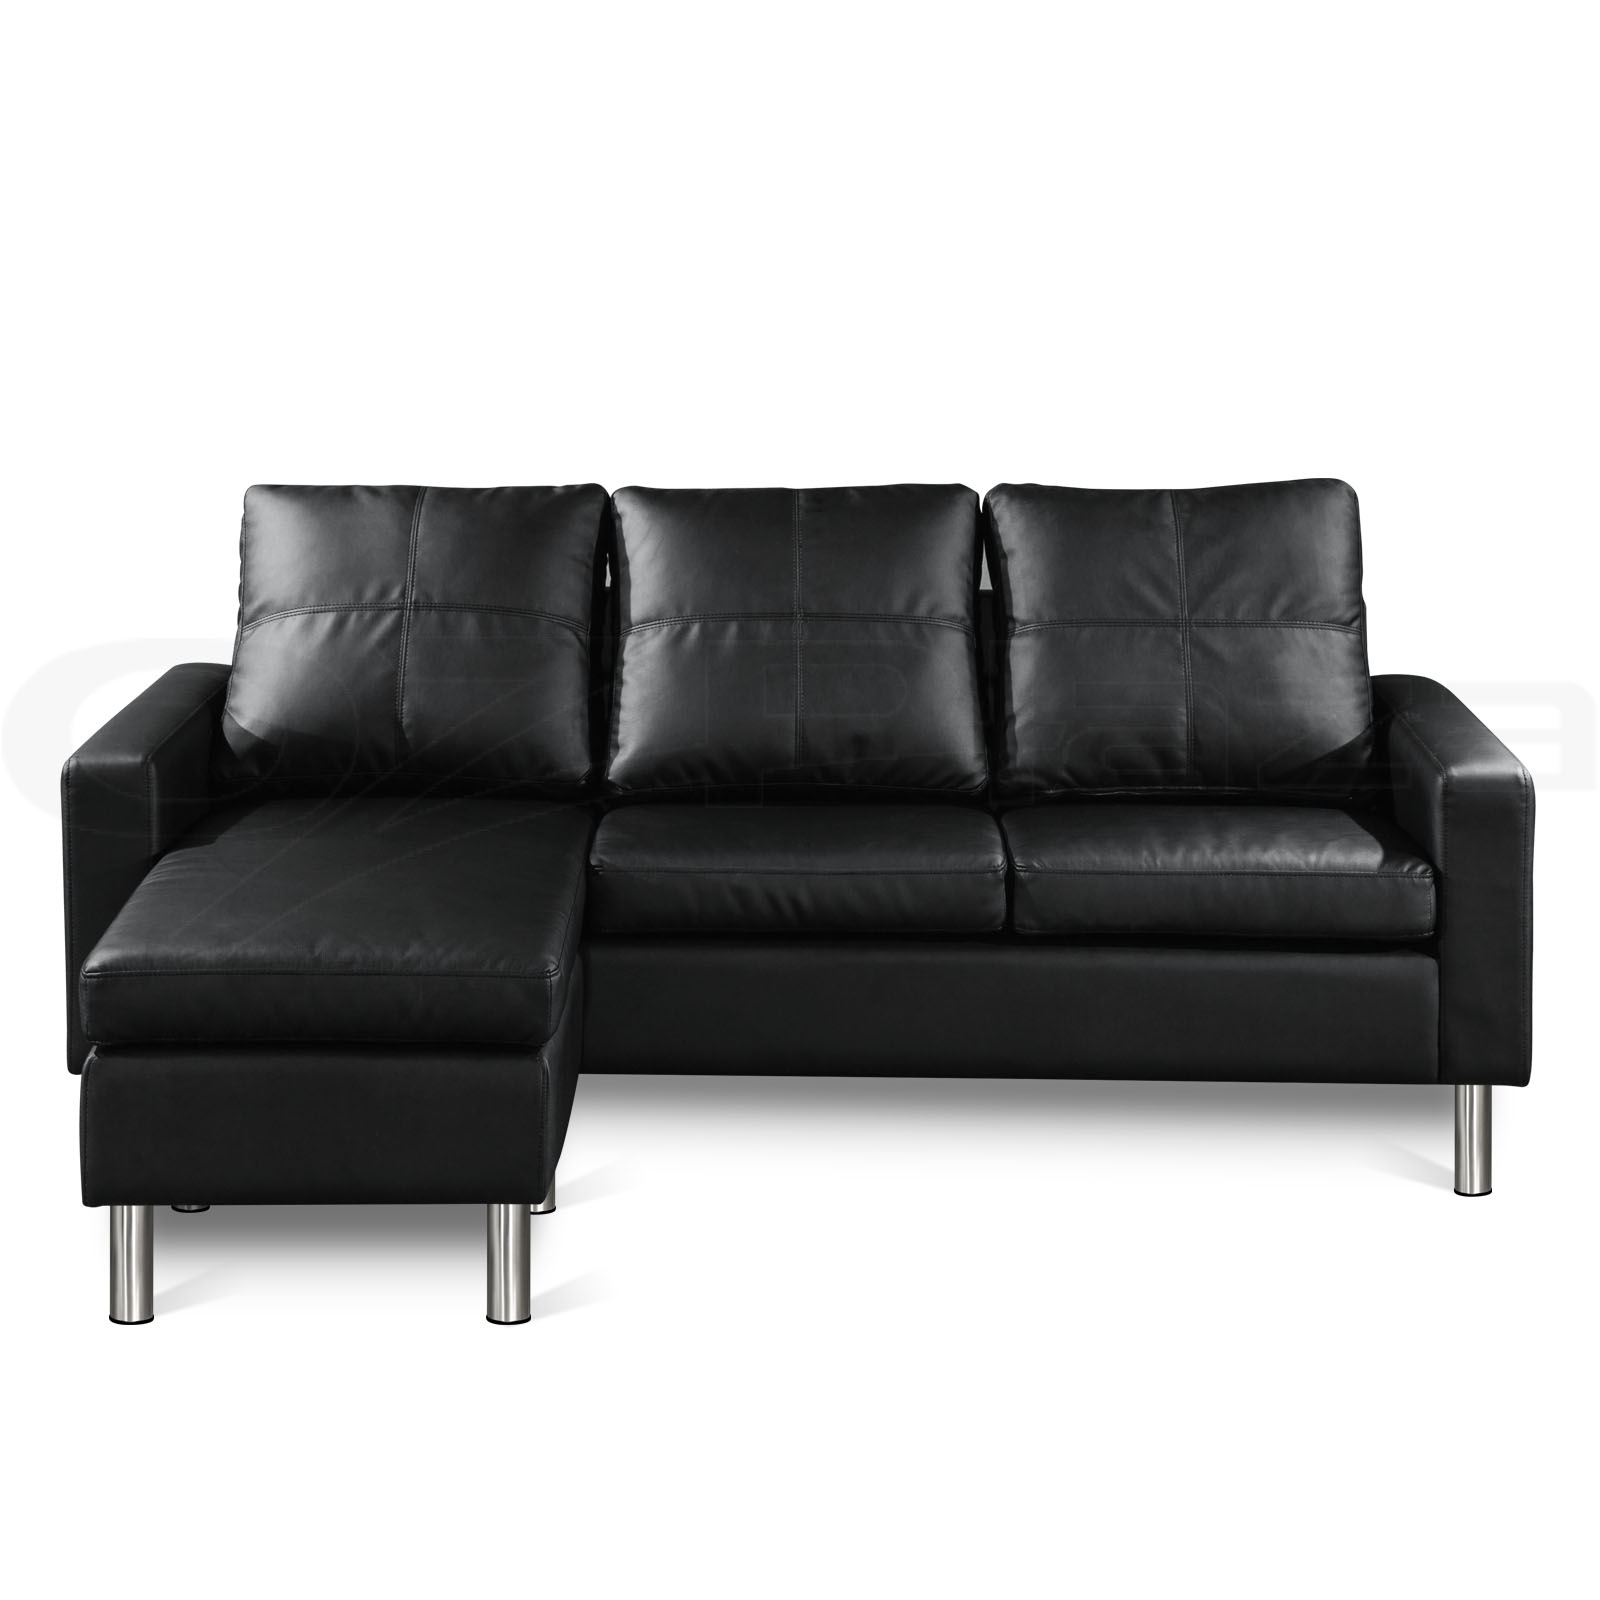 Pu leather sofa modular lounge suite chaise double futon for Black chaise lounge sofa